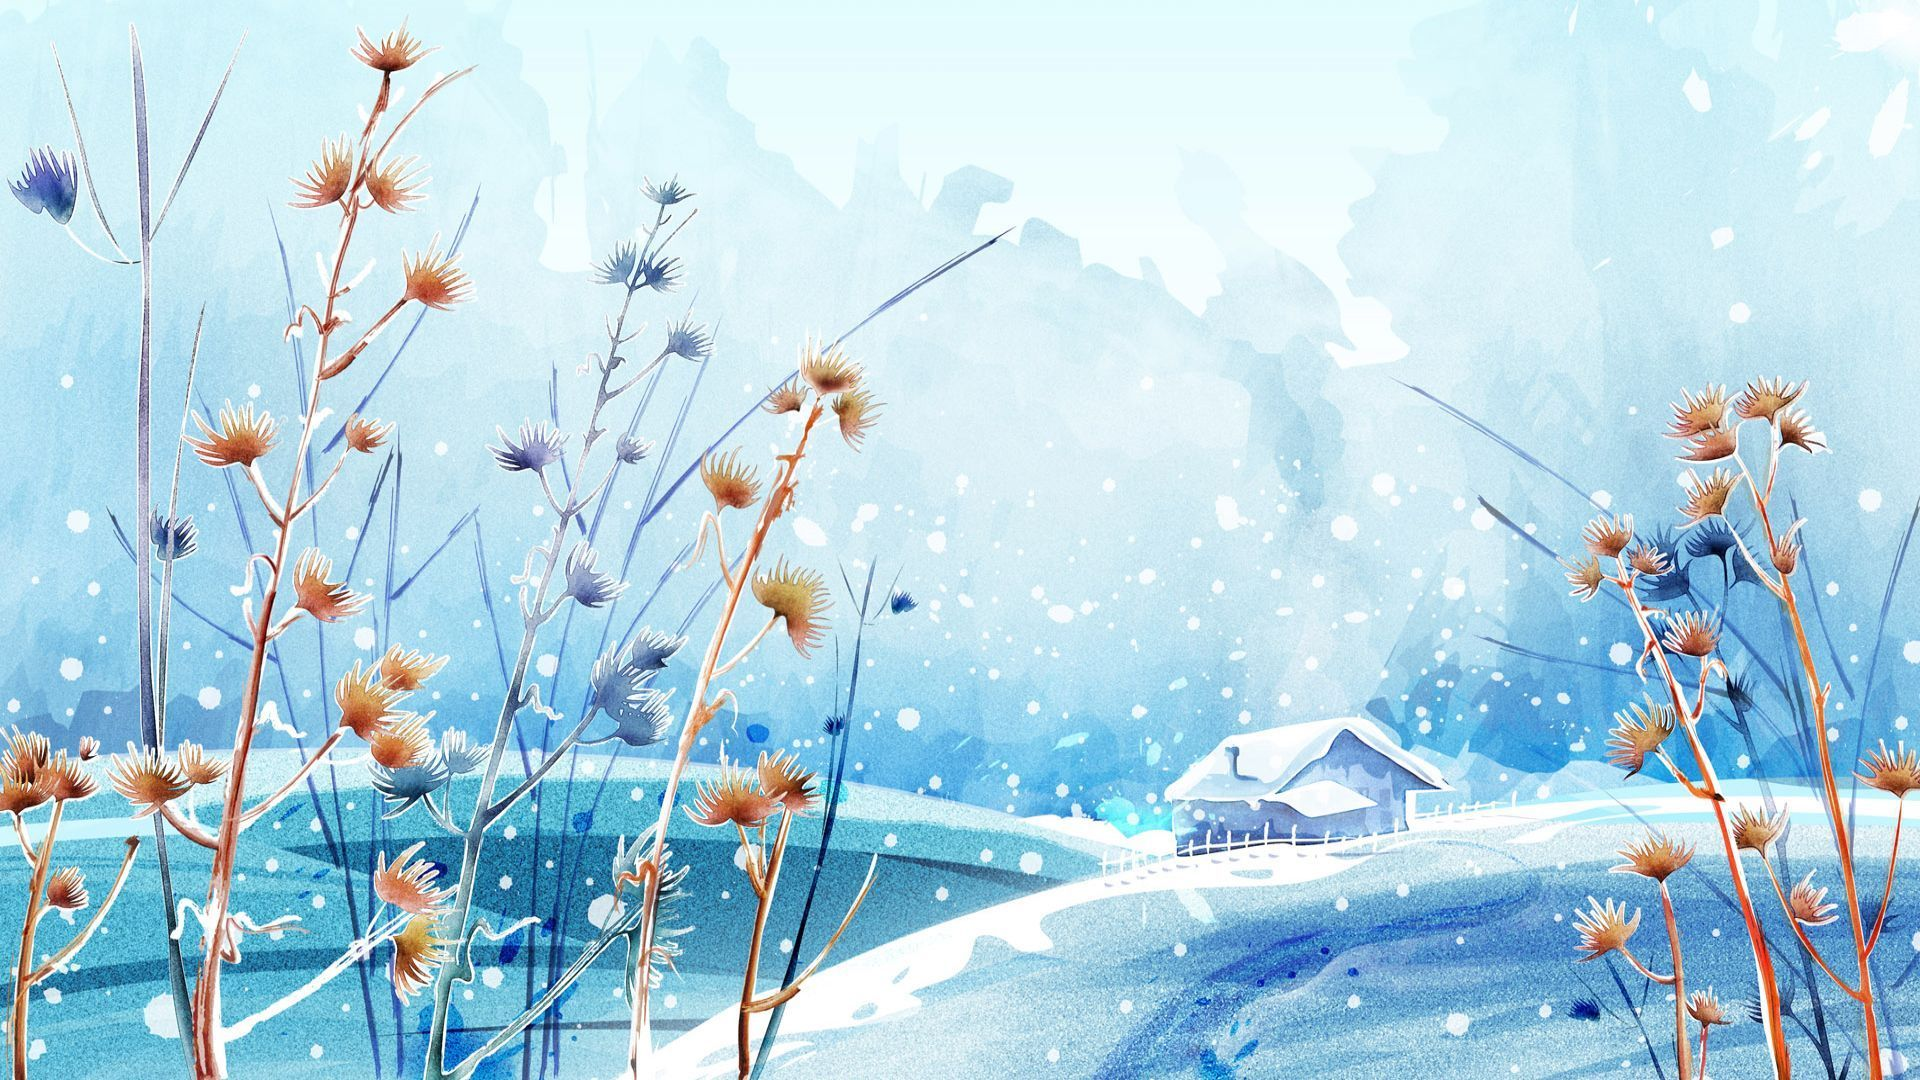 Anime Winter Scenery Wallpaper Find best latest Anime